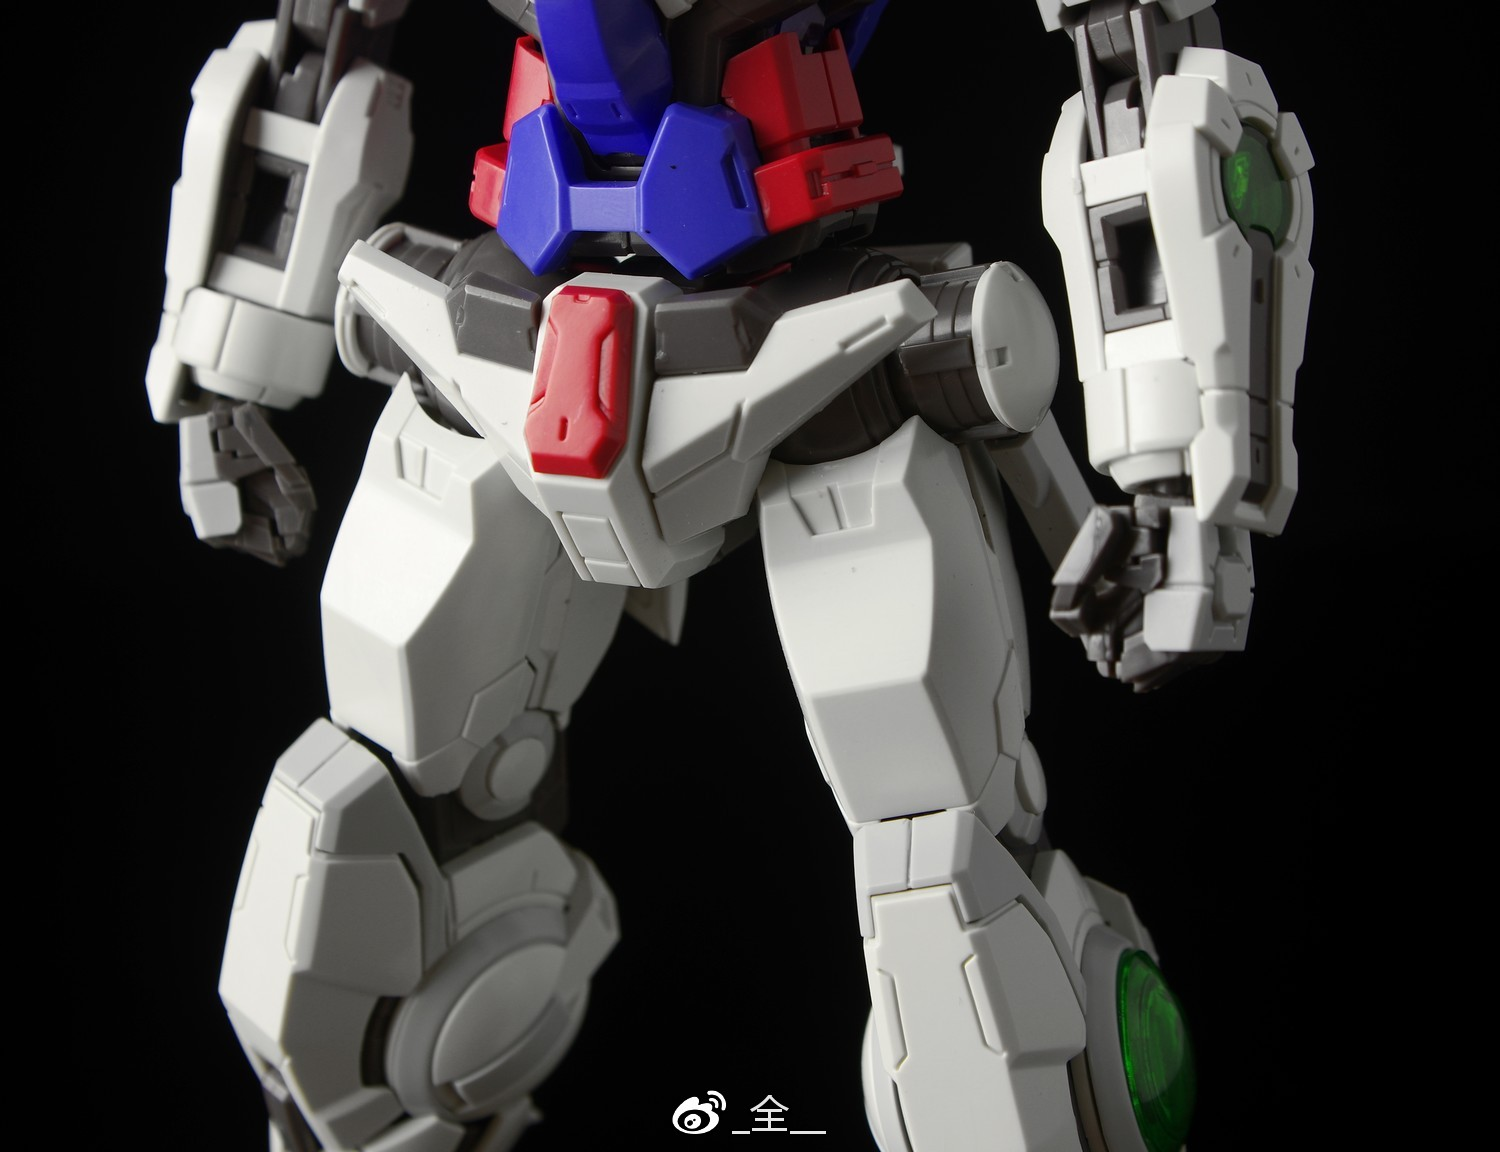 S269_mg_exia_led_hobby_star_inask_090.jpg